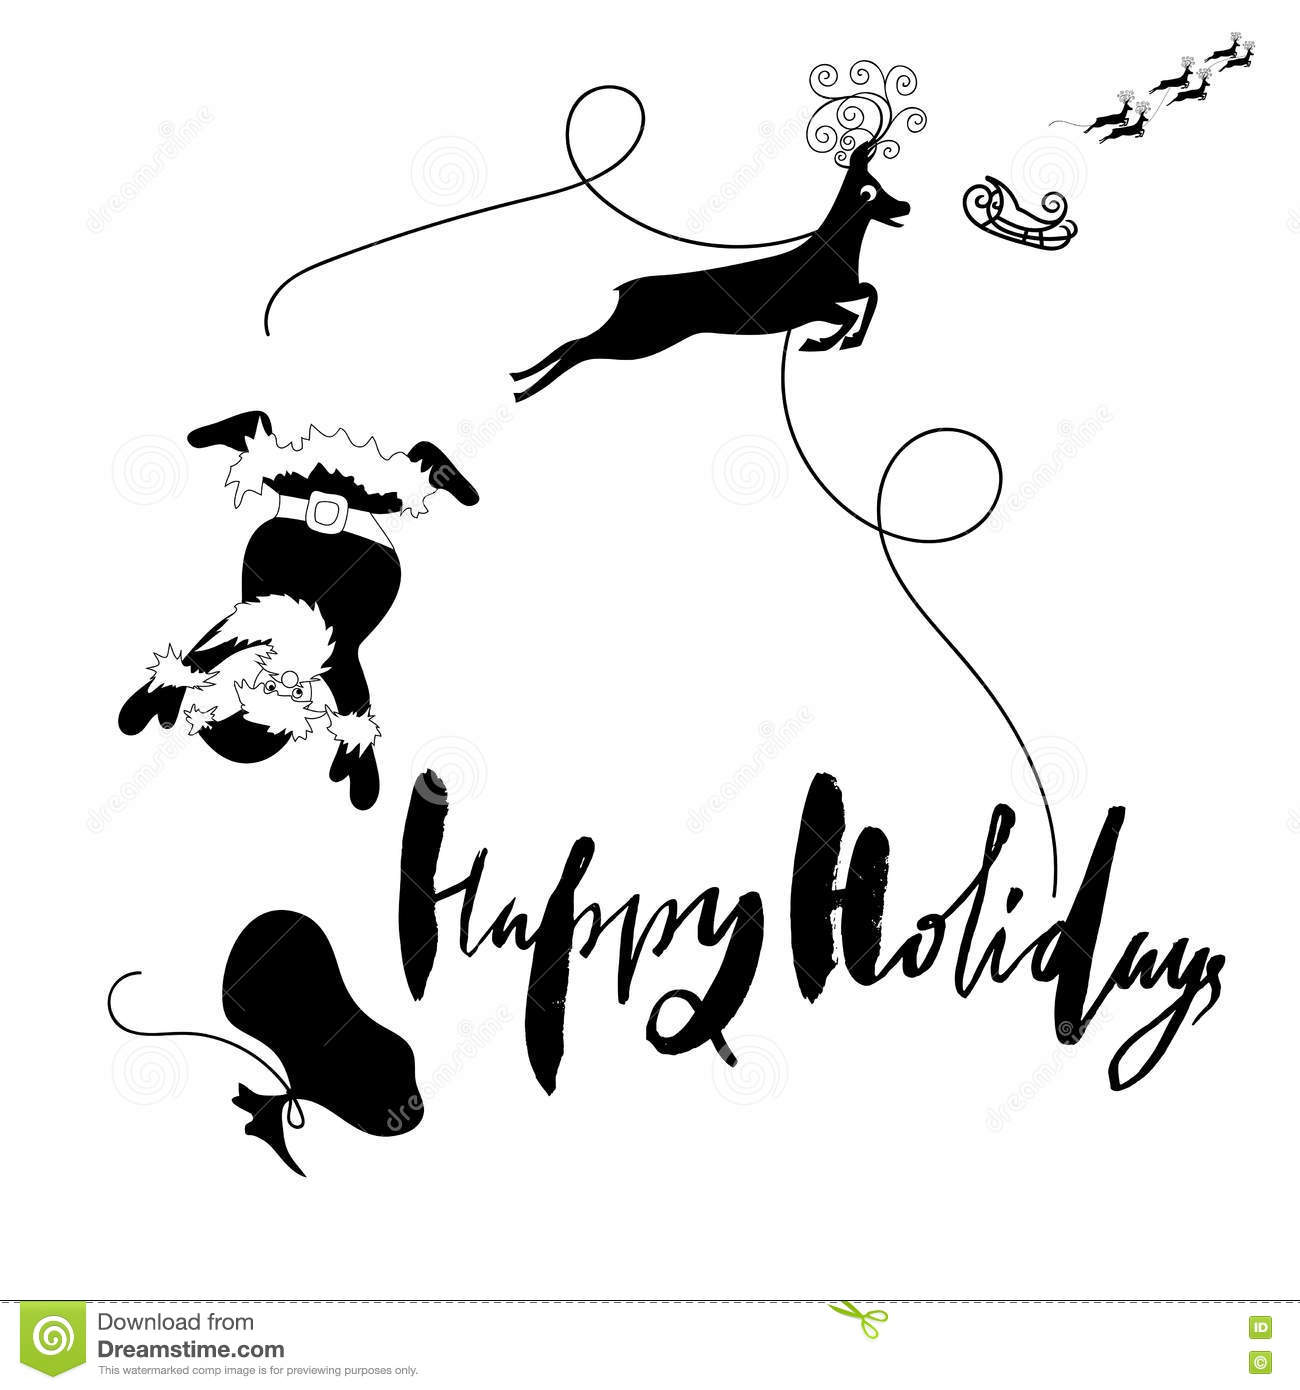 Santa Claus Fall From Sleigh With Harness On The Reindeer